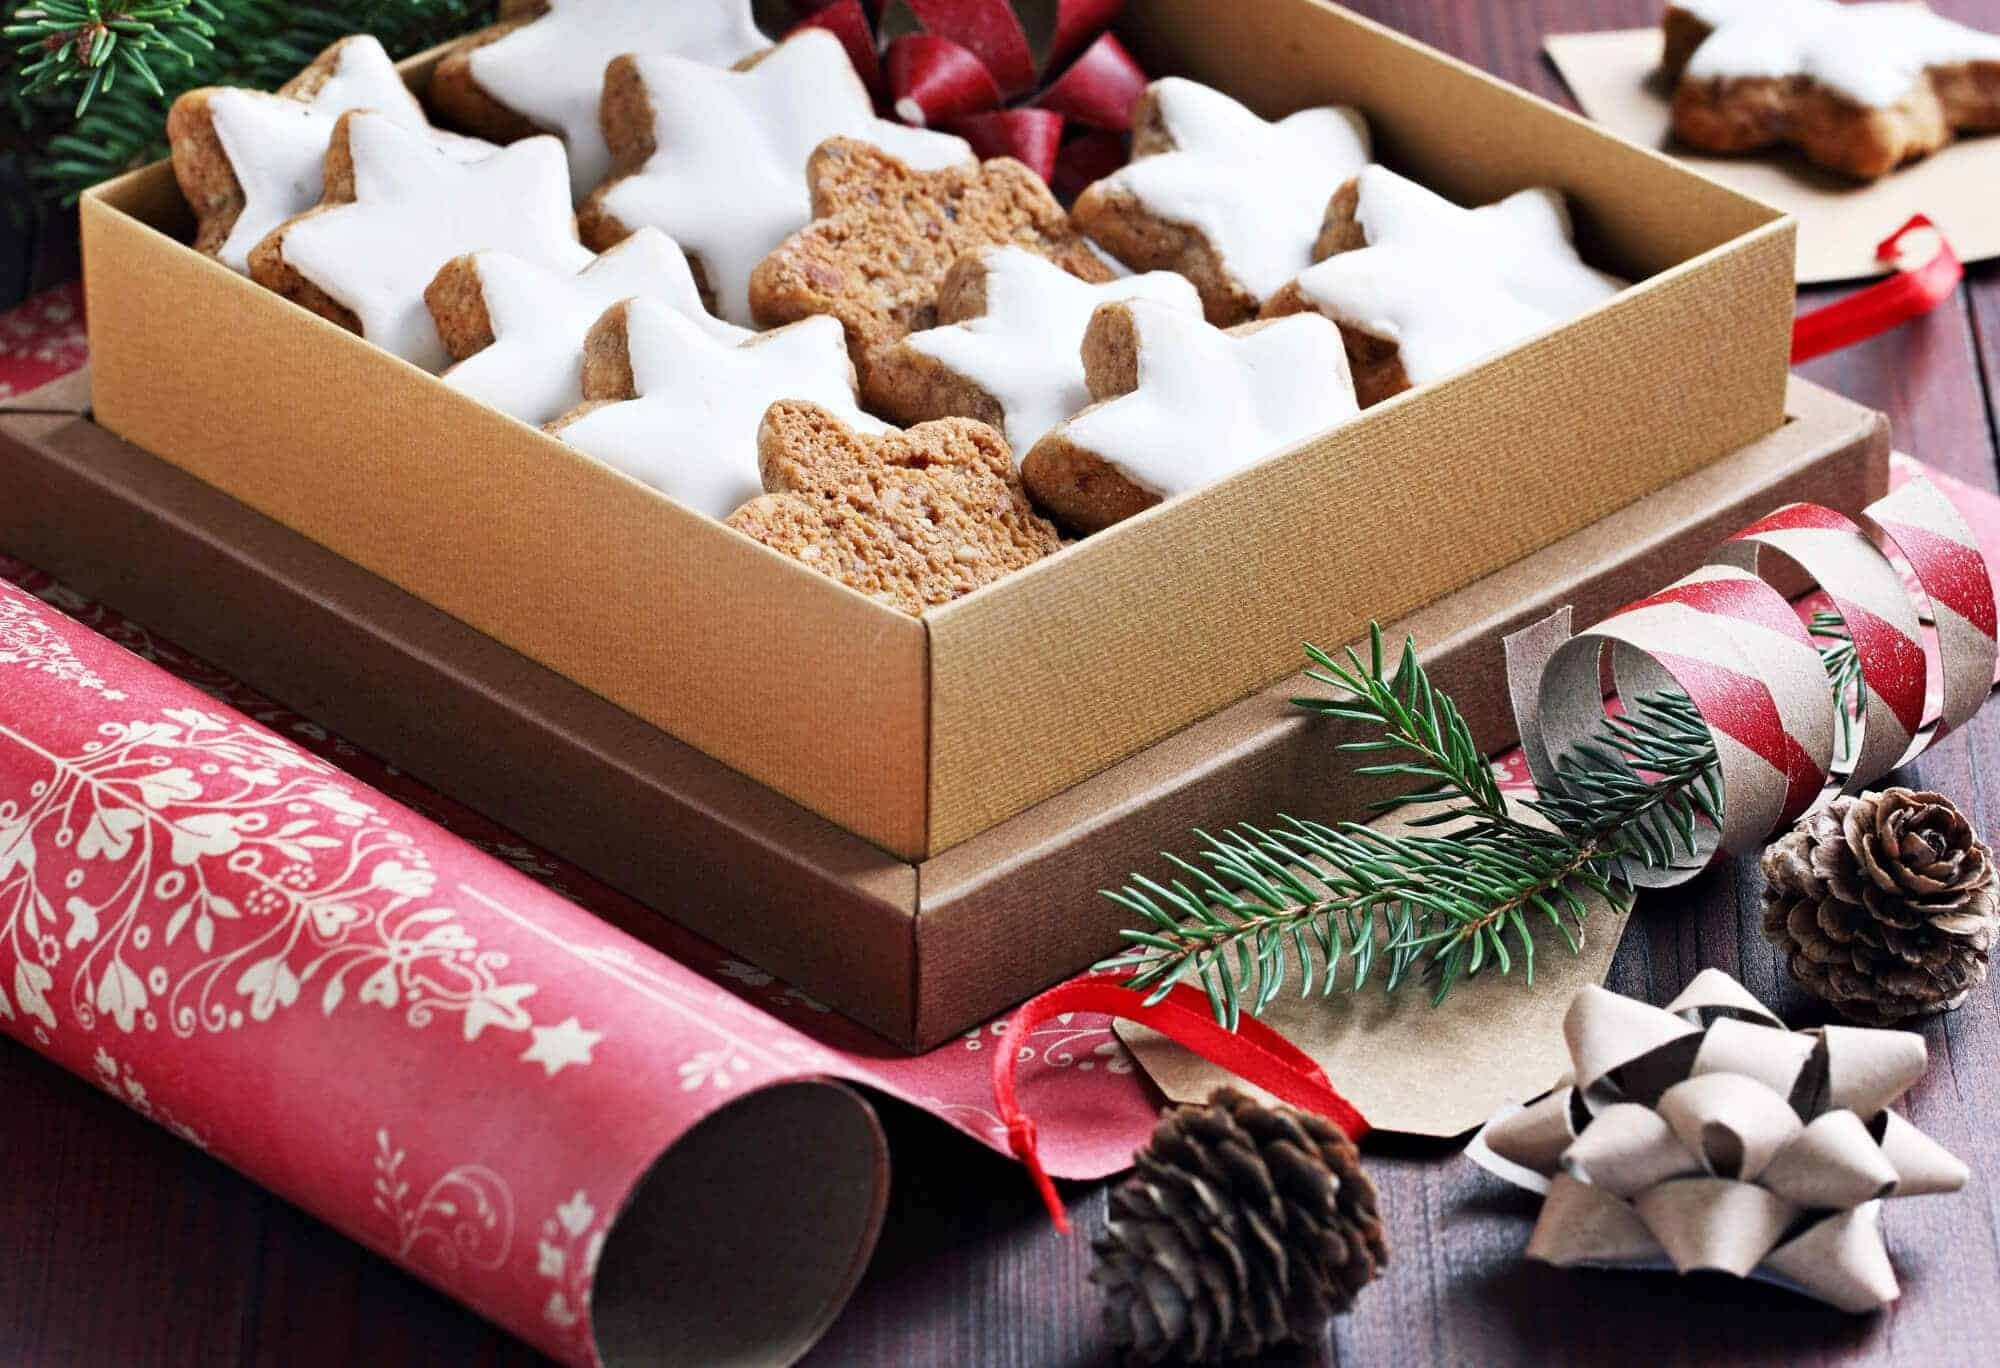 german zimtsterne recipe baking cookies almonds hazelnuts cinnamon star traditional authentic germany christmas holidays